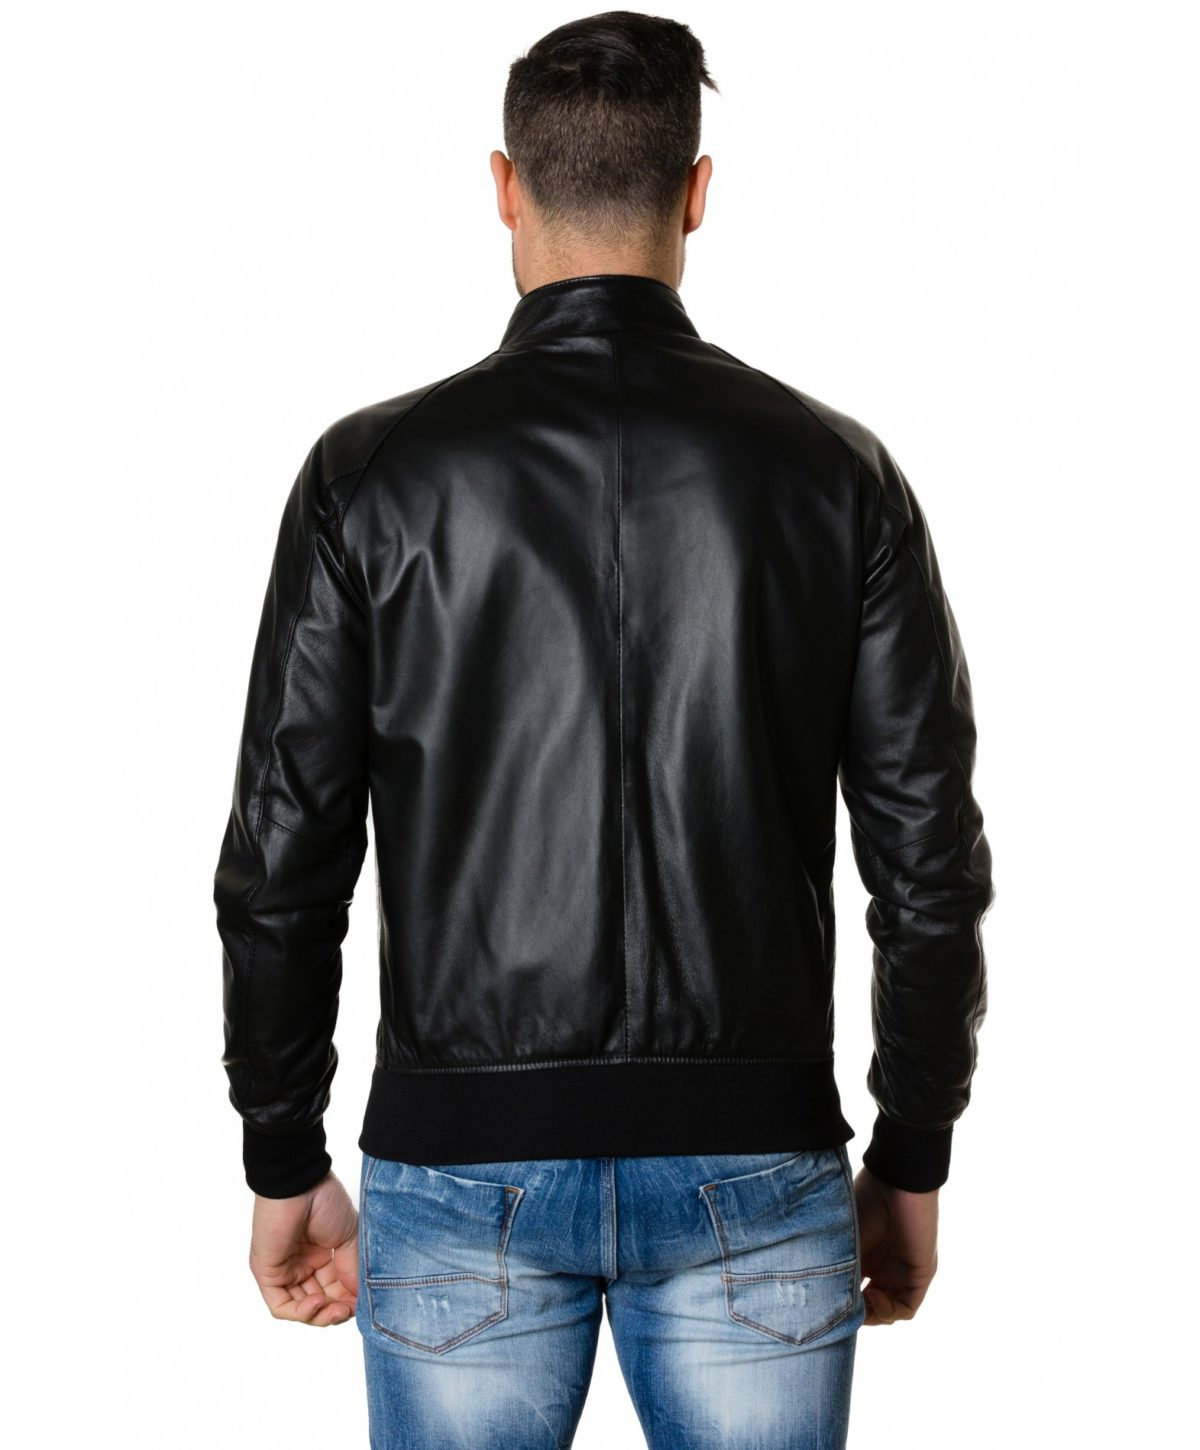 1066-black-colour-leather-bomber-jacket-smooth-aspect (3)